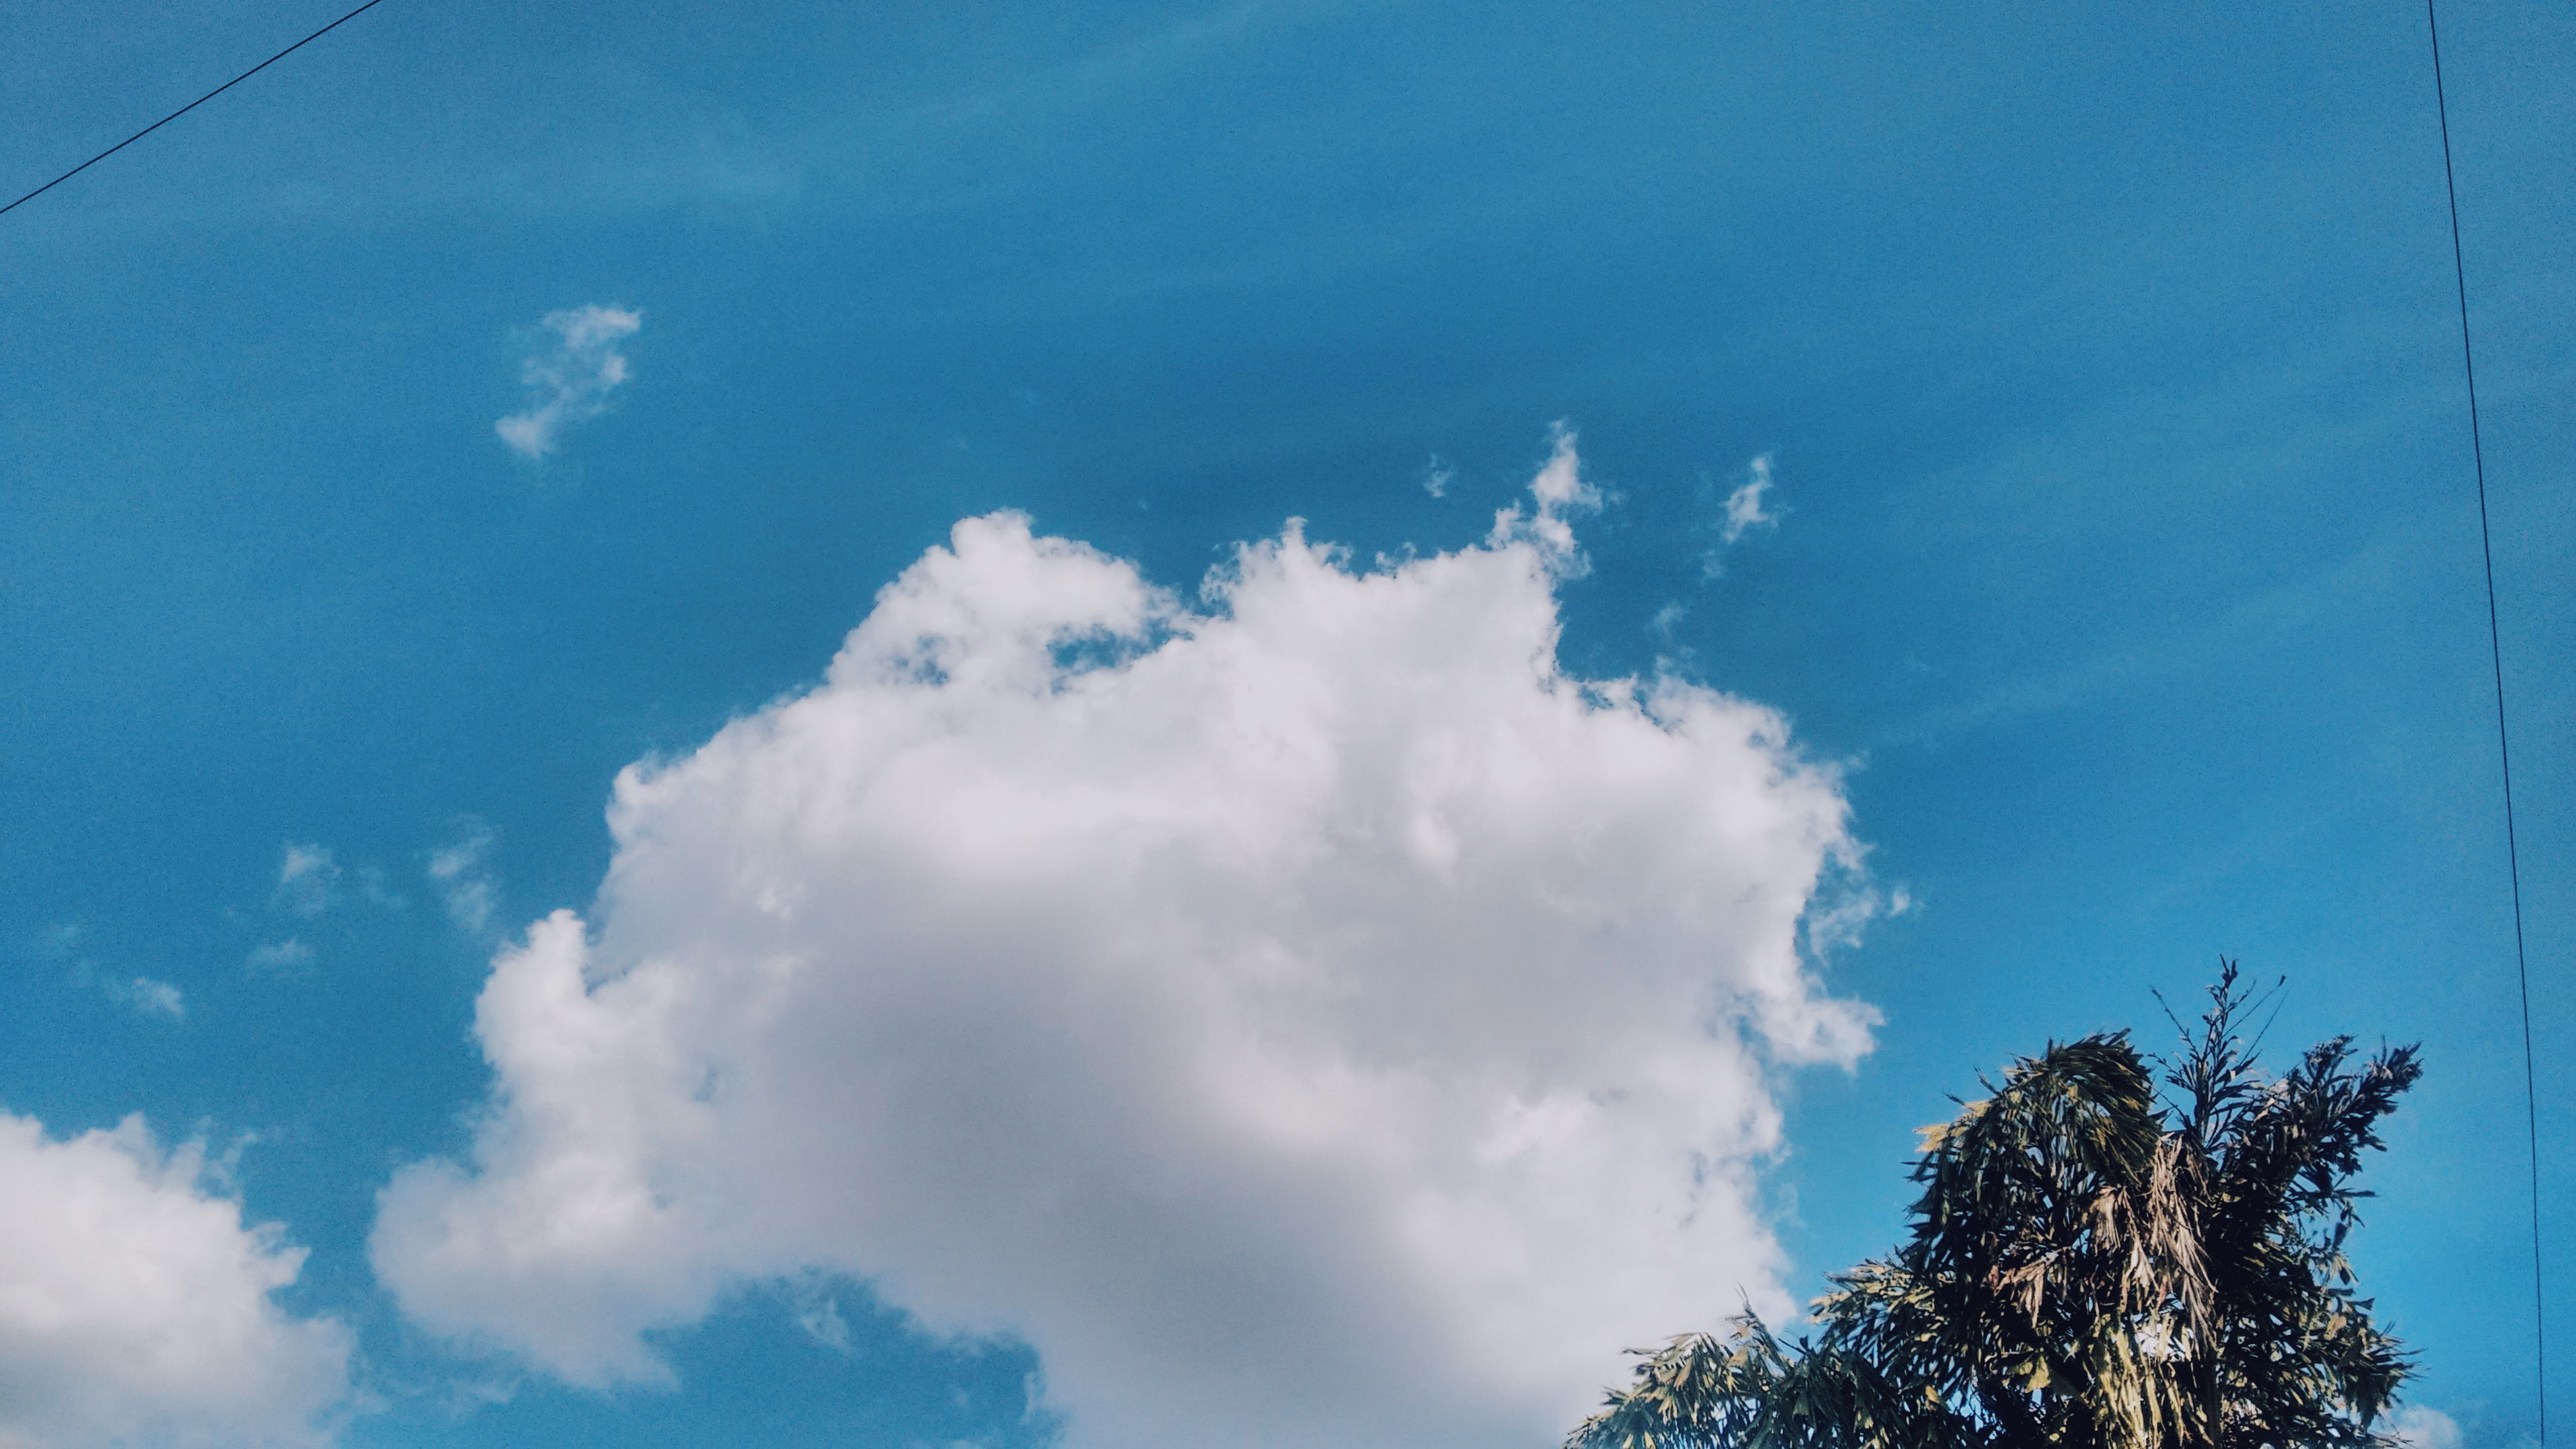 low angle view, sky, cloud - sky, nature, beauty in nature, day, tranquility, no people, outdoors, tree, growth, scenics, treetop